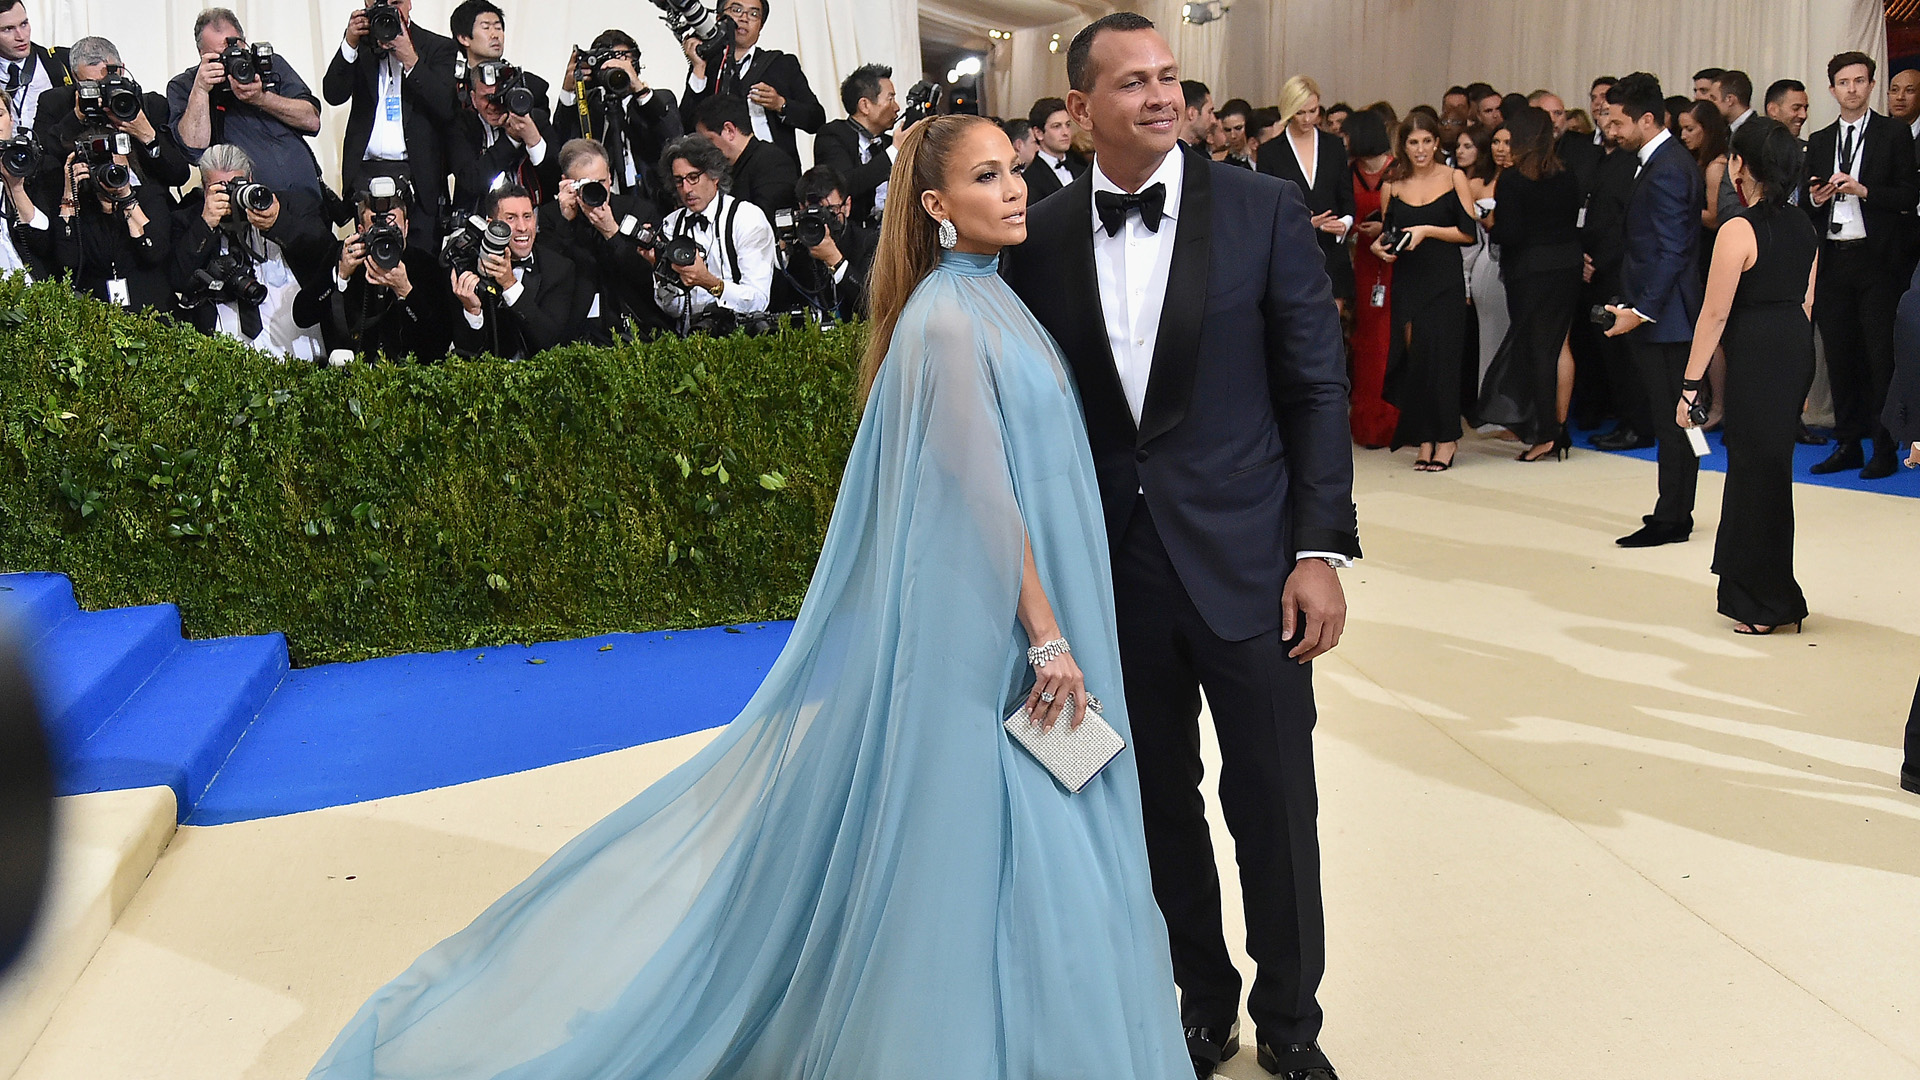 Rod In Trouble? Jennifer Lopez Reportedly Hires PI To Follow Alex Rodriguez